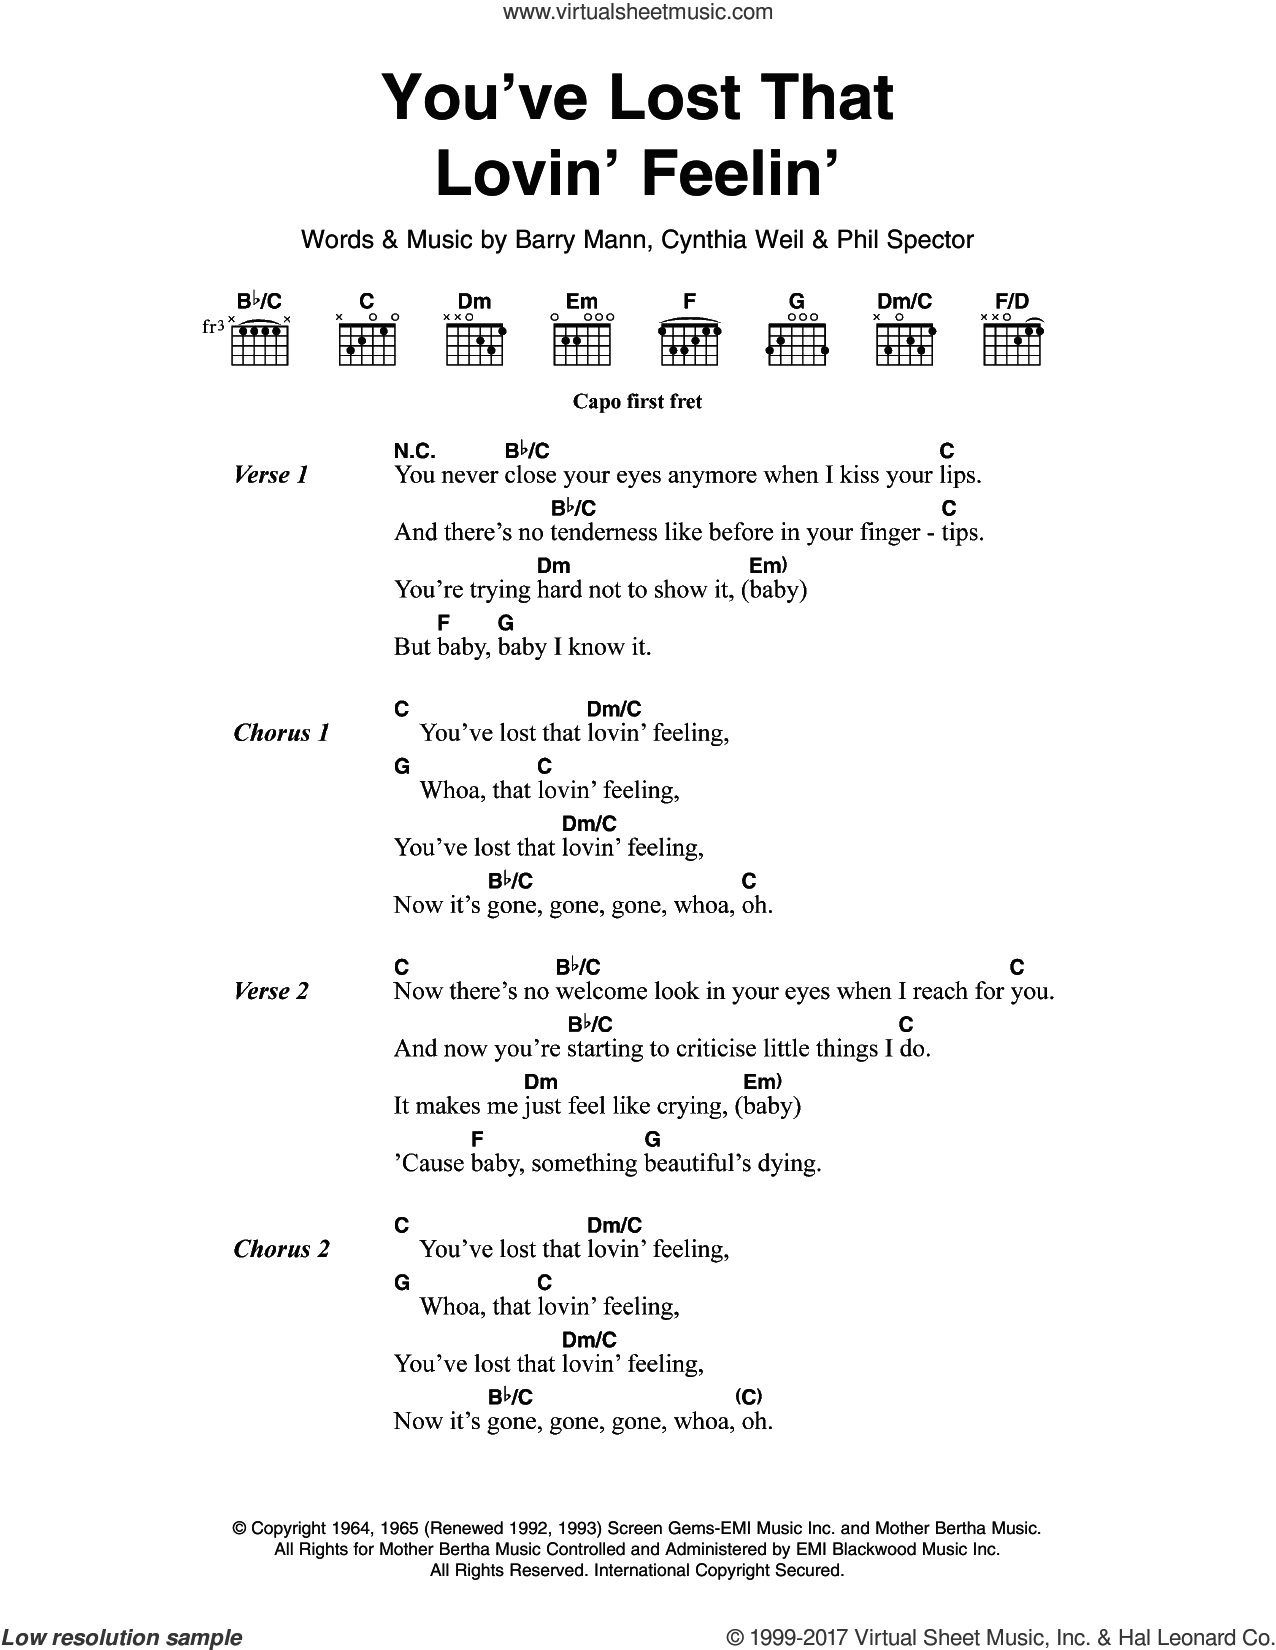 Brothers Youve Lost That Lovin Feelin Sheet Music For Guitar